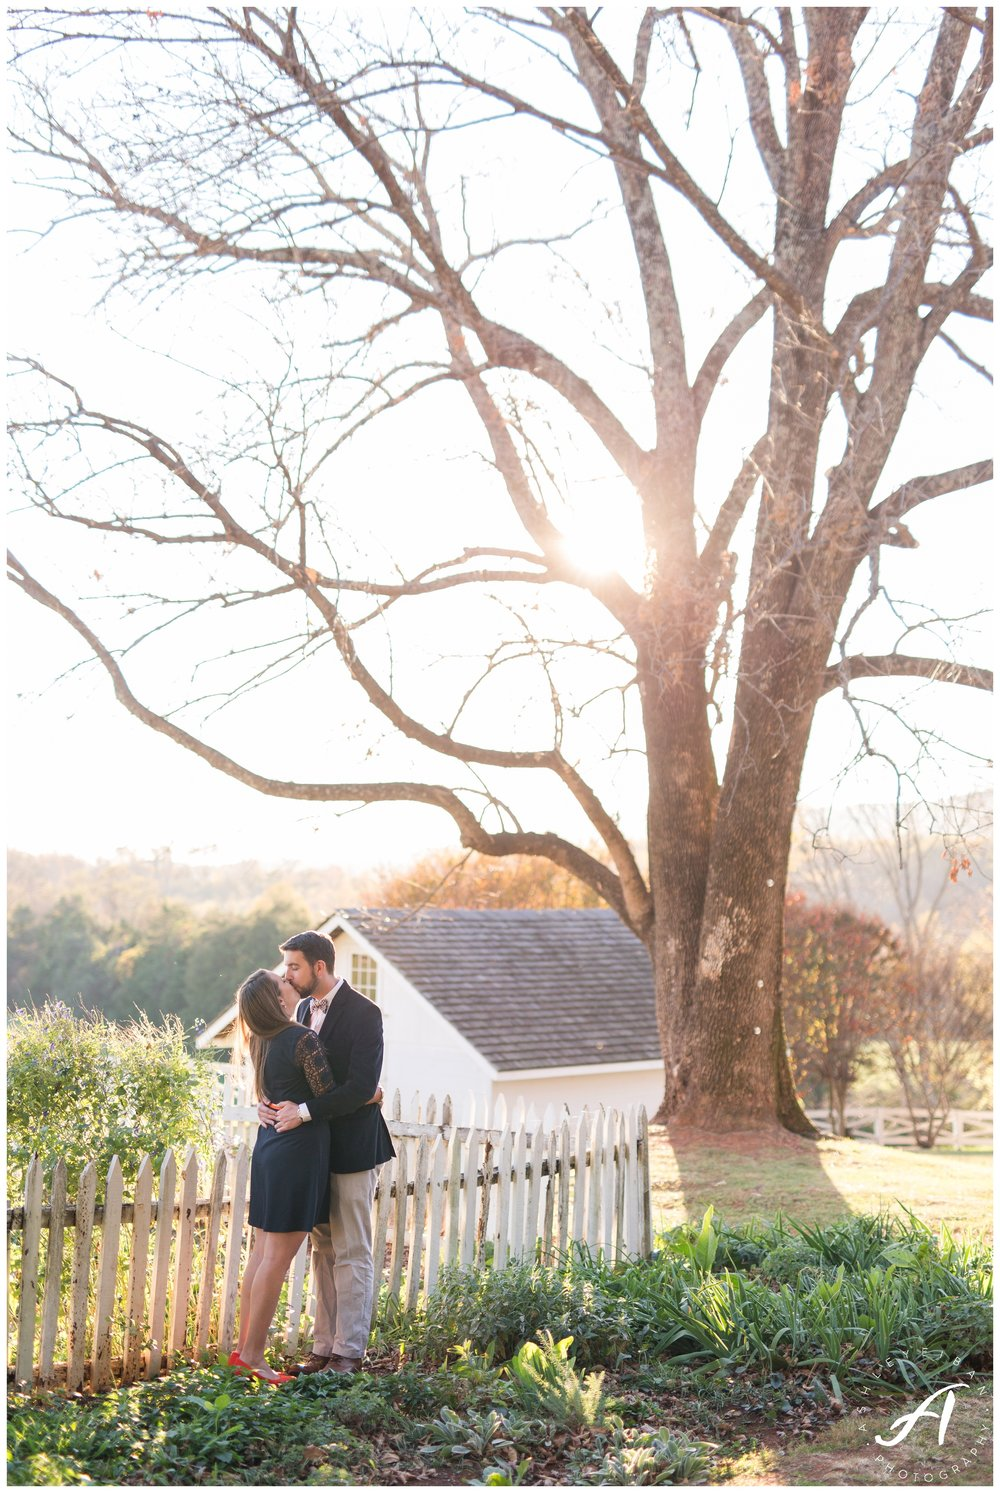 Charlottesville engagement and wedding photographer || Central Virginia Wedding Photographer || www.ashleyeiban.com